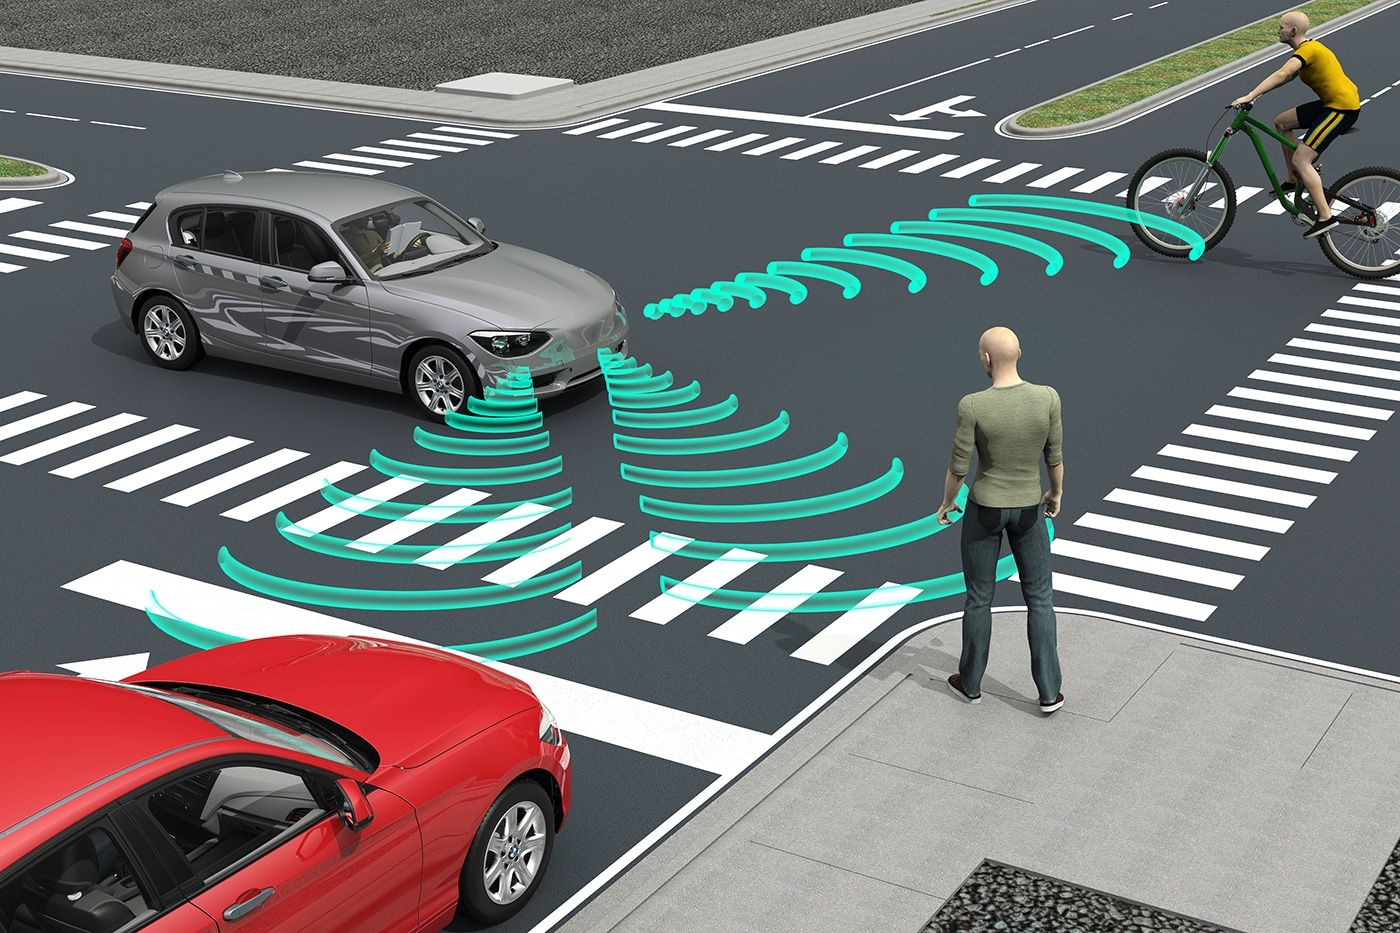 While the autonomous car industry continues to grow, one unfortunate hurdle its journey is a number of accidents. This shows that the technology that cars use to spot pedestrians and other obstacles and avoid collisions still has a long way to go. It's a problem that puzzled experts for a long time. Self-driving cars can […] Continue reading Teaching autonomous vehicles, robots to make better plans on Inceptive Mind.